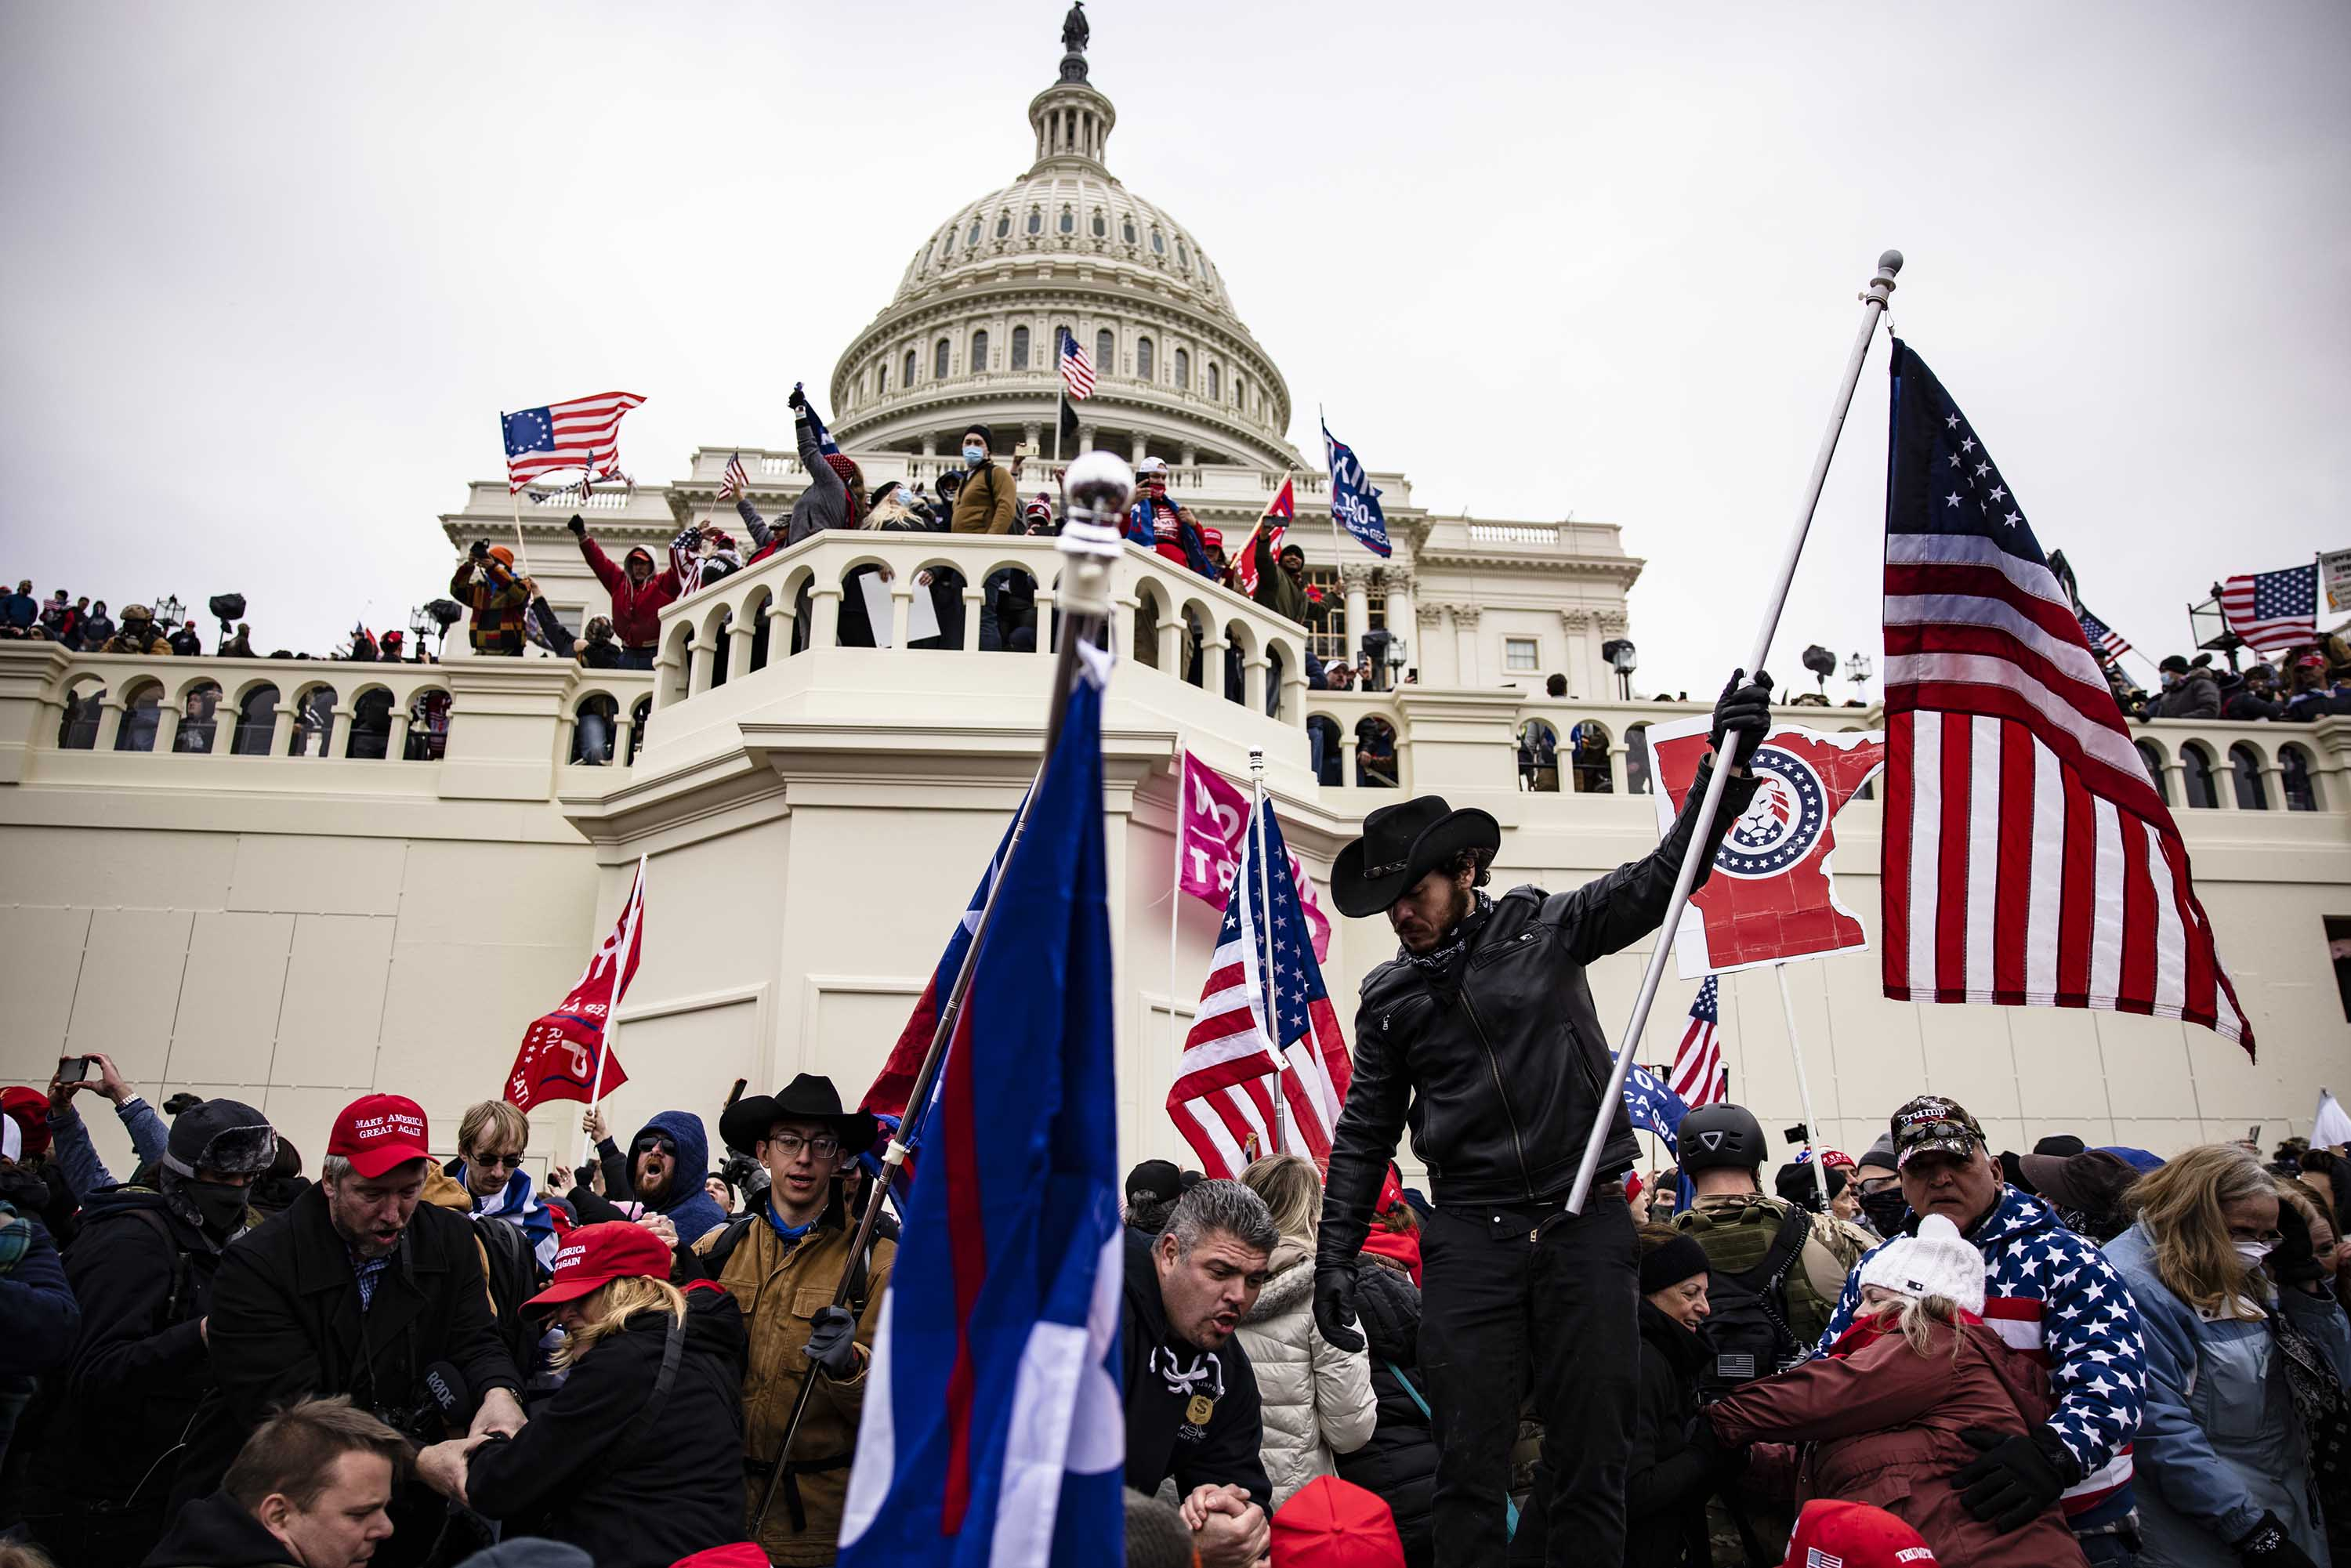 Pro-Trump supporters storm the U.S. Capitol following a rally with President Donald Trump on January 6, in Washington, DC.